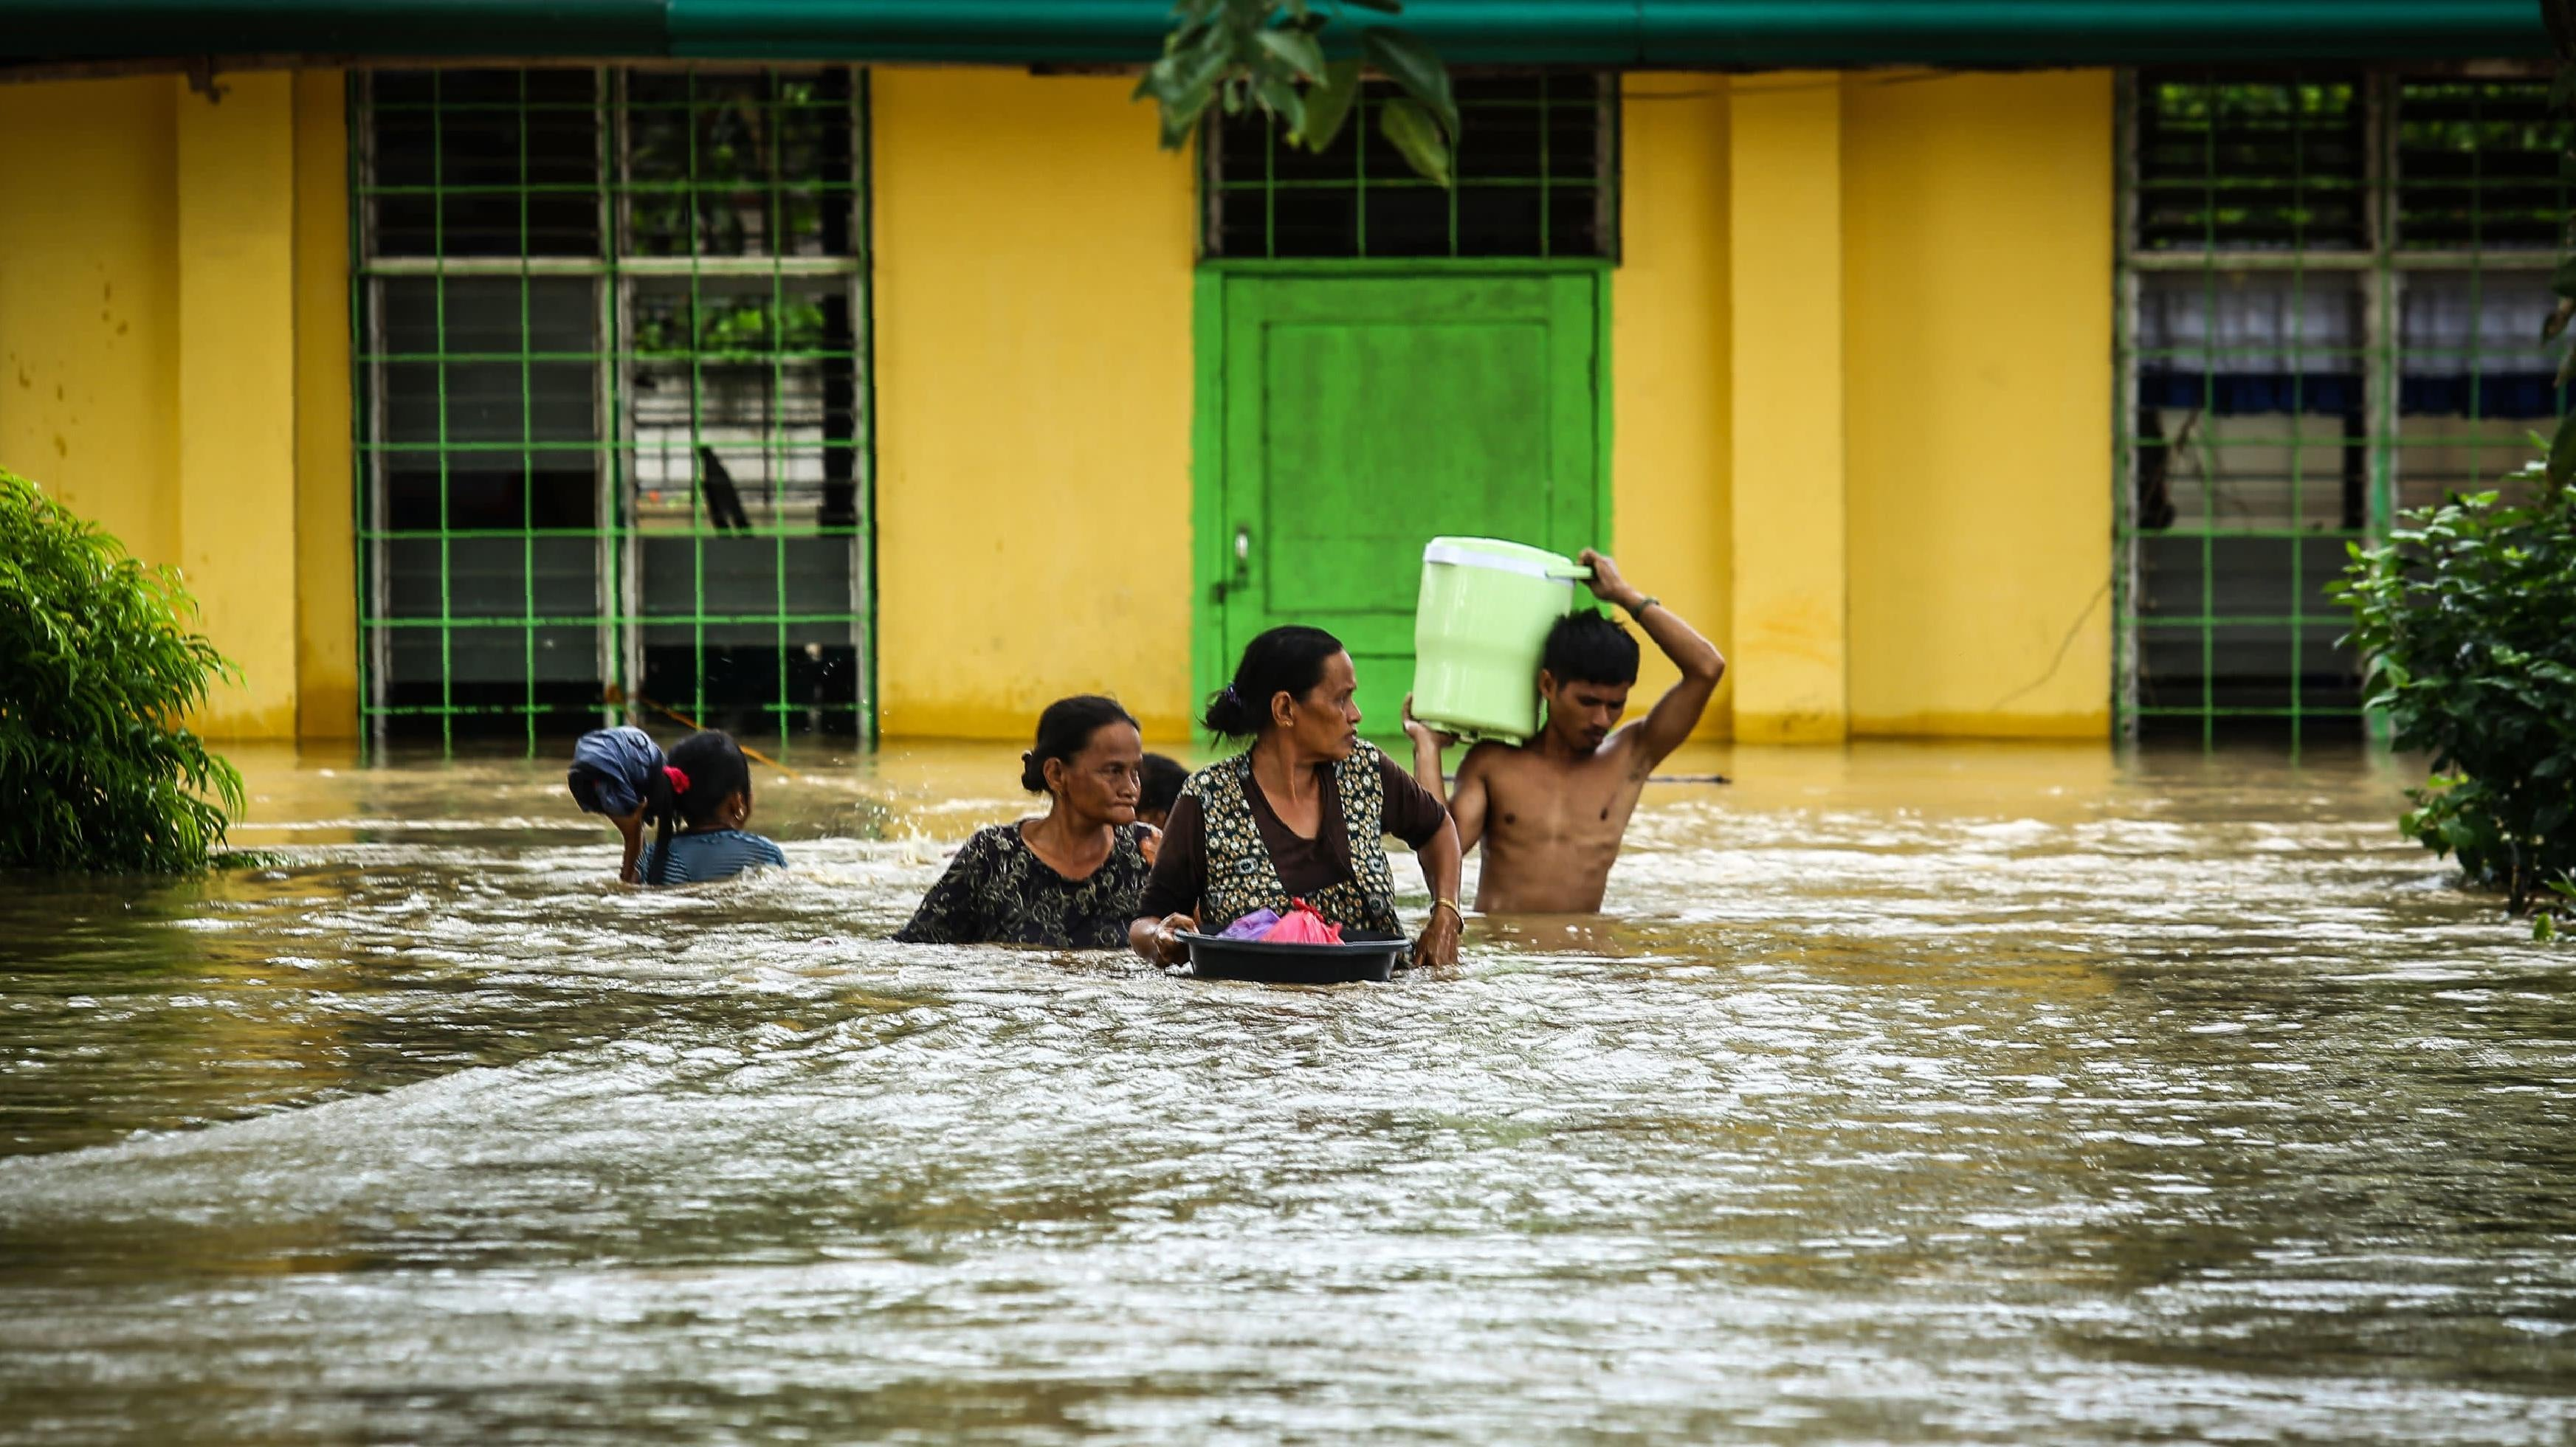 Poor Countries Are Hit Worst By Extreme Weather, But No One Is Safe